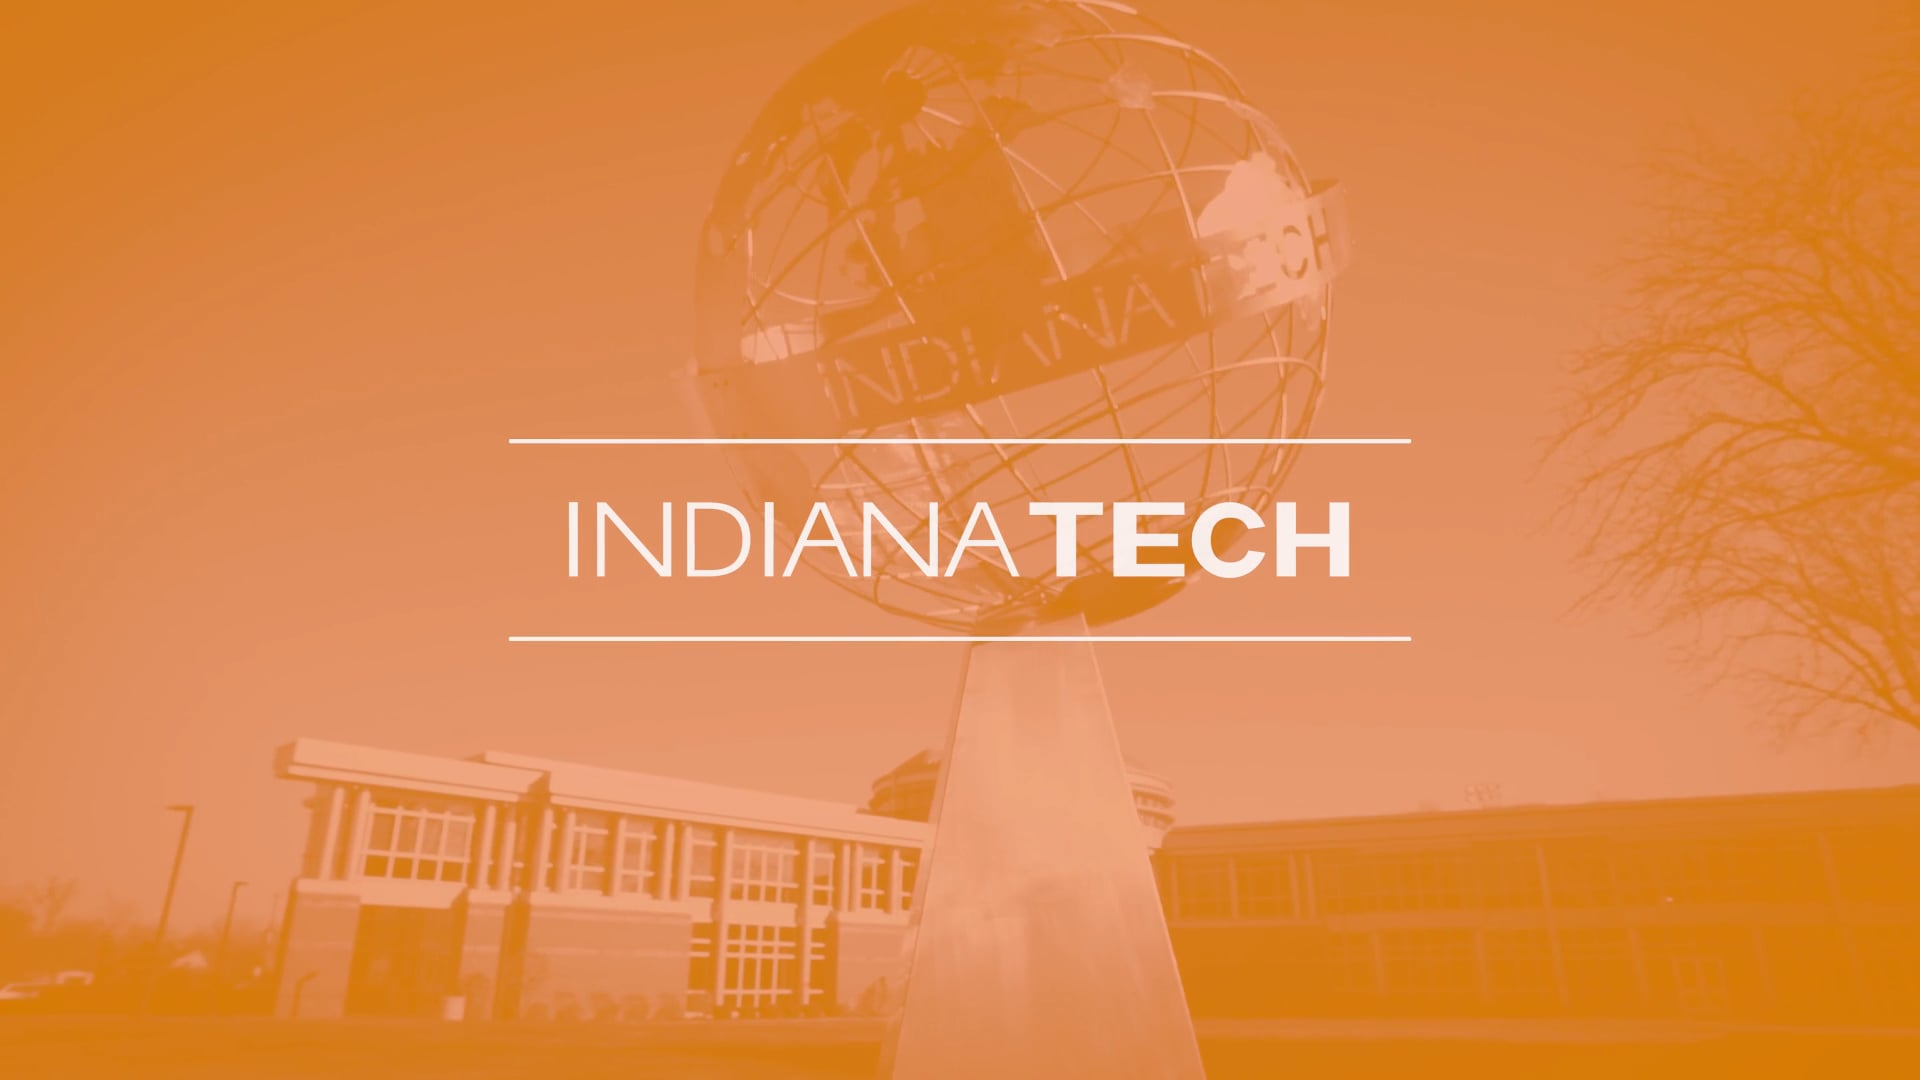 Indiana Tech - You Are Welcome Here